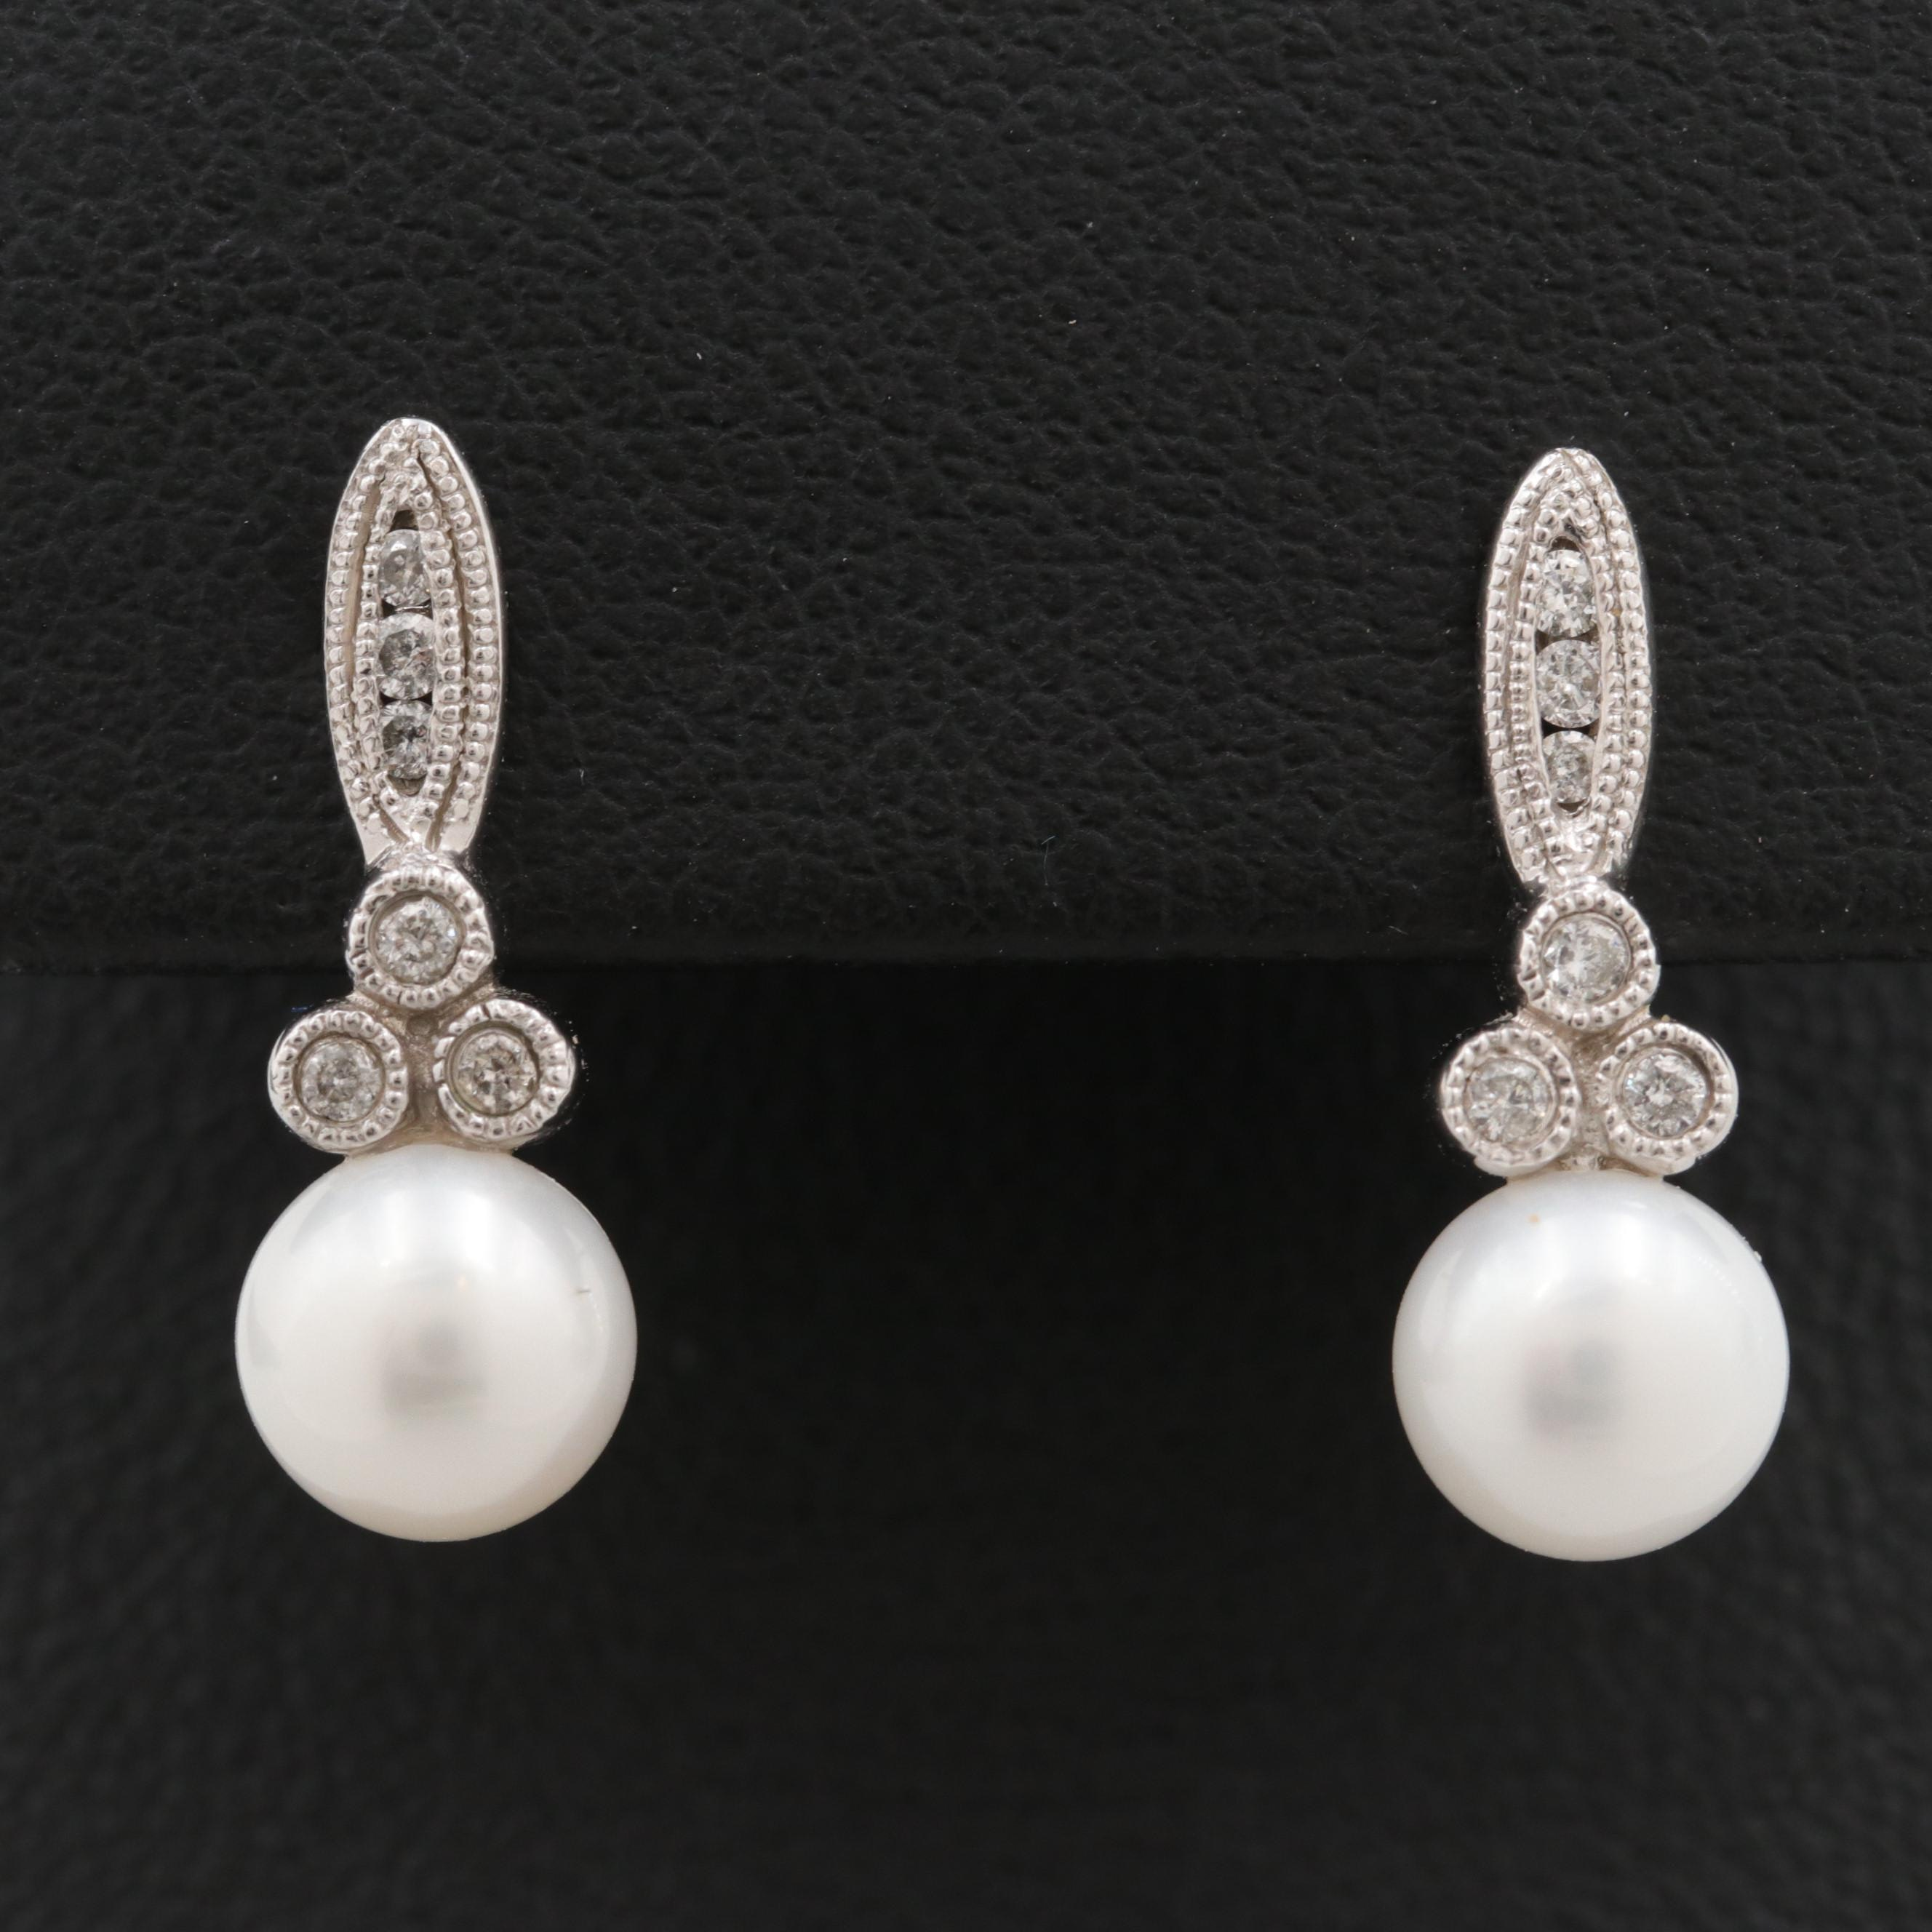 10K White Gold Diamond and Cultured Pearl Earrings